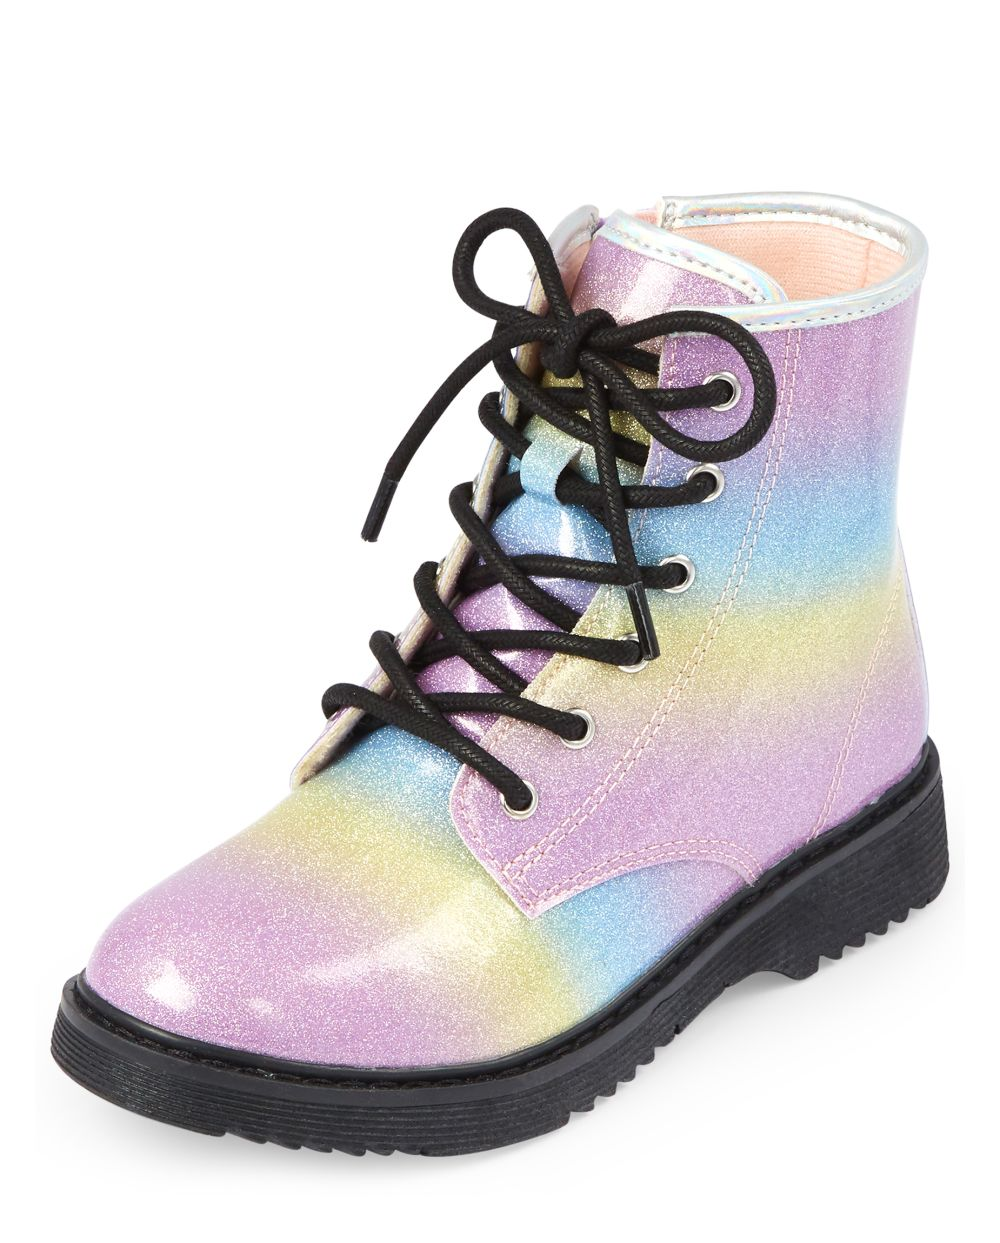 Girls Glitter Rainbow Lace Up Booties